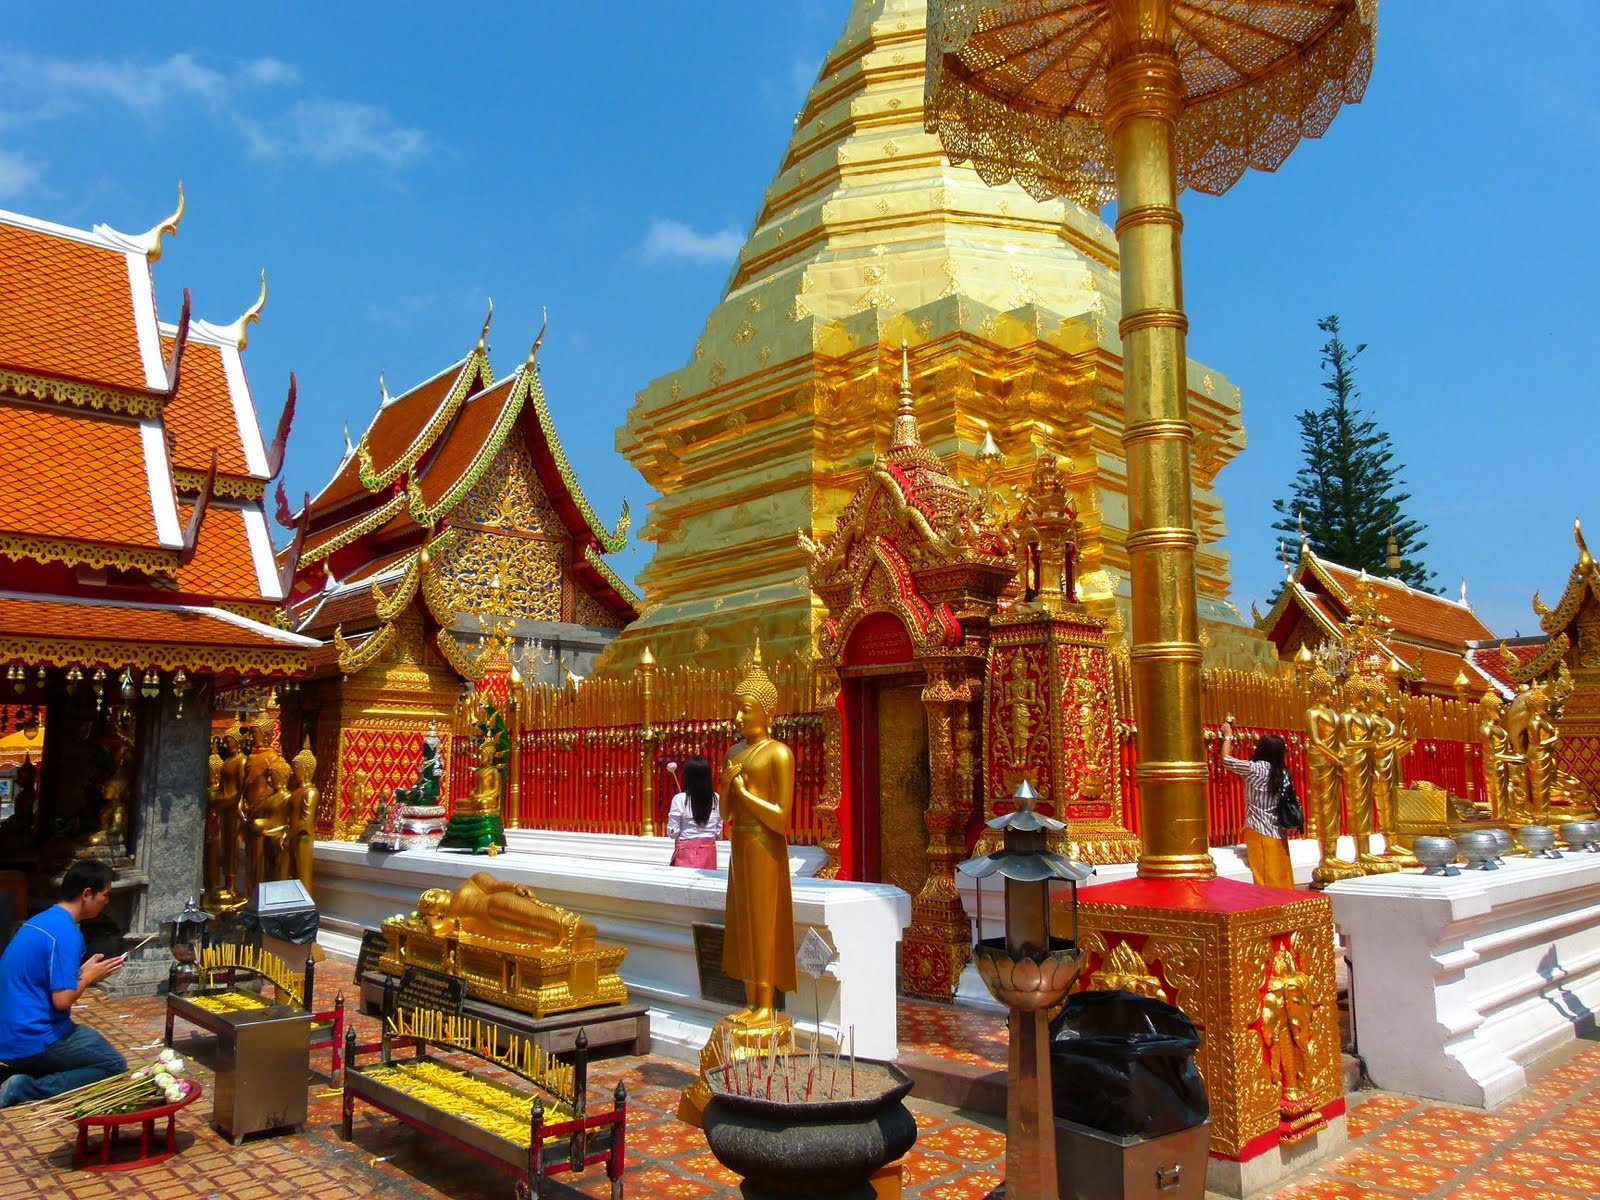 Wat Phra Jao Mengrai Chiang Mai, Chiang Mai: Tourist Attractions, Things to Do, Rafting, Nightlife ...